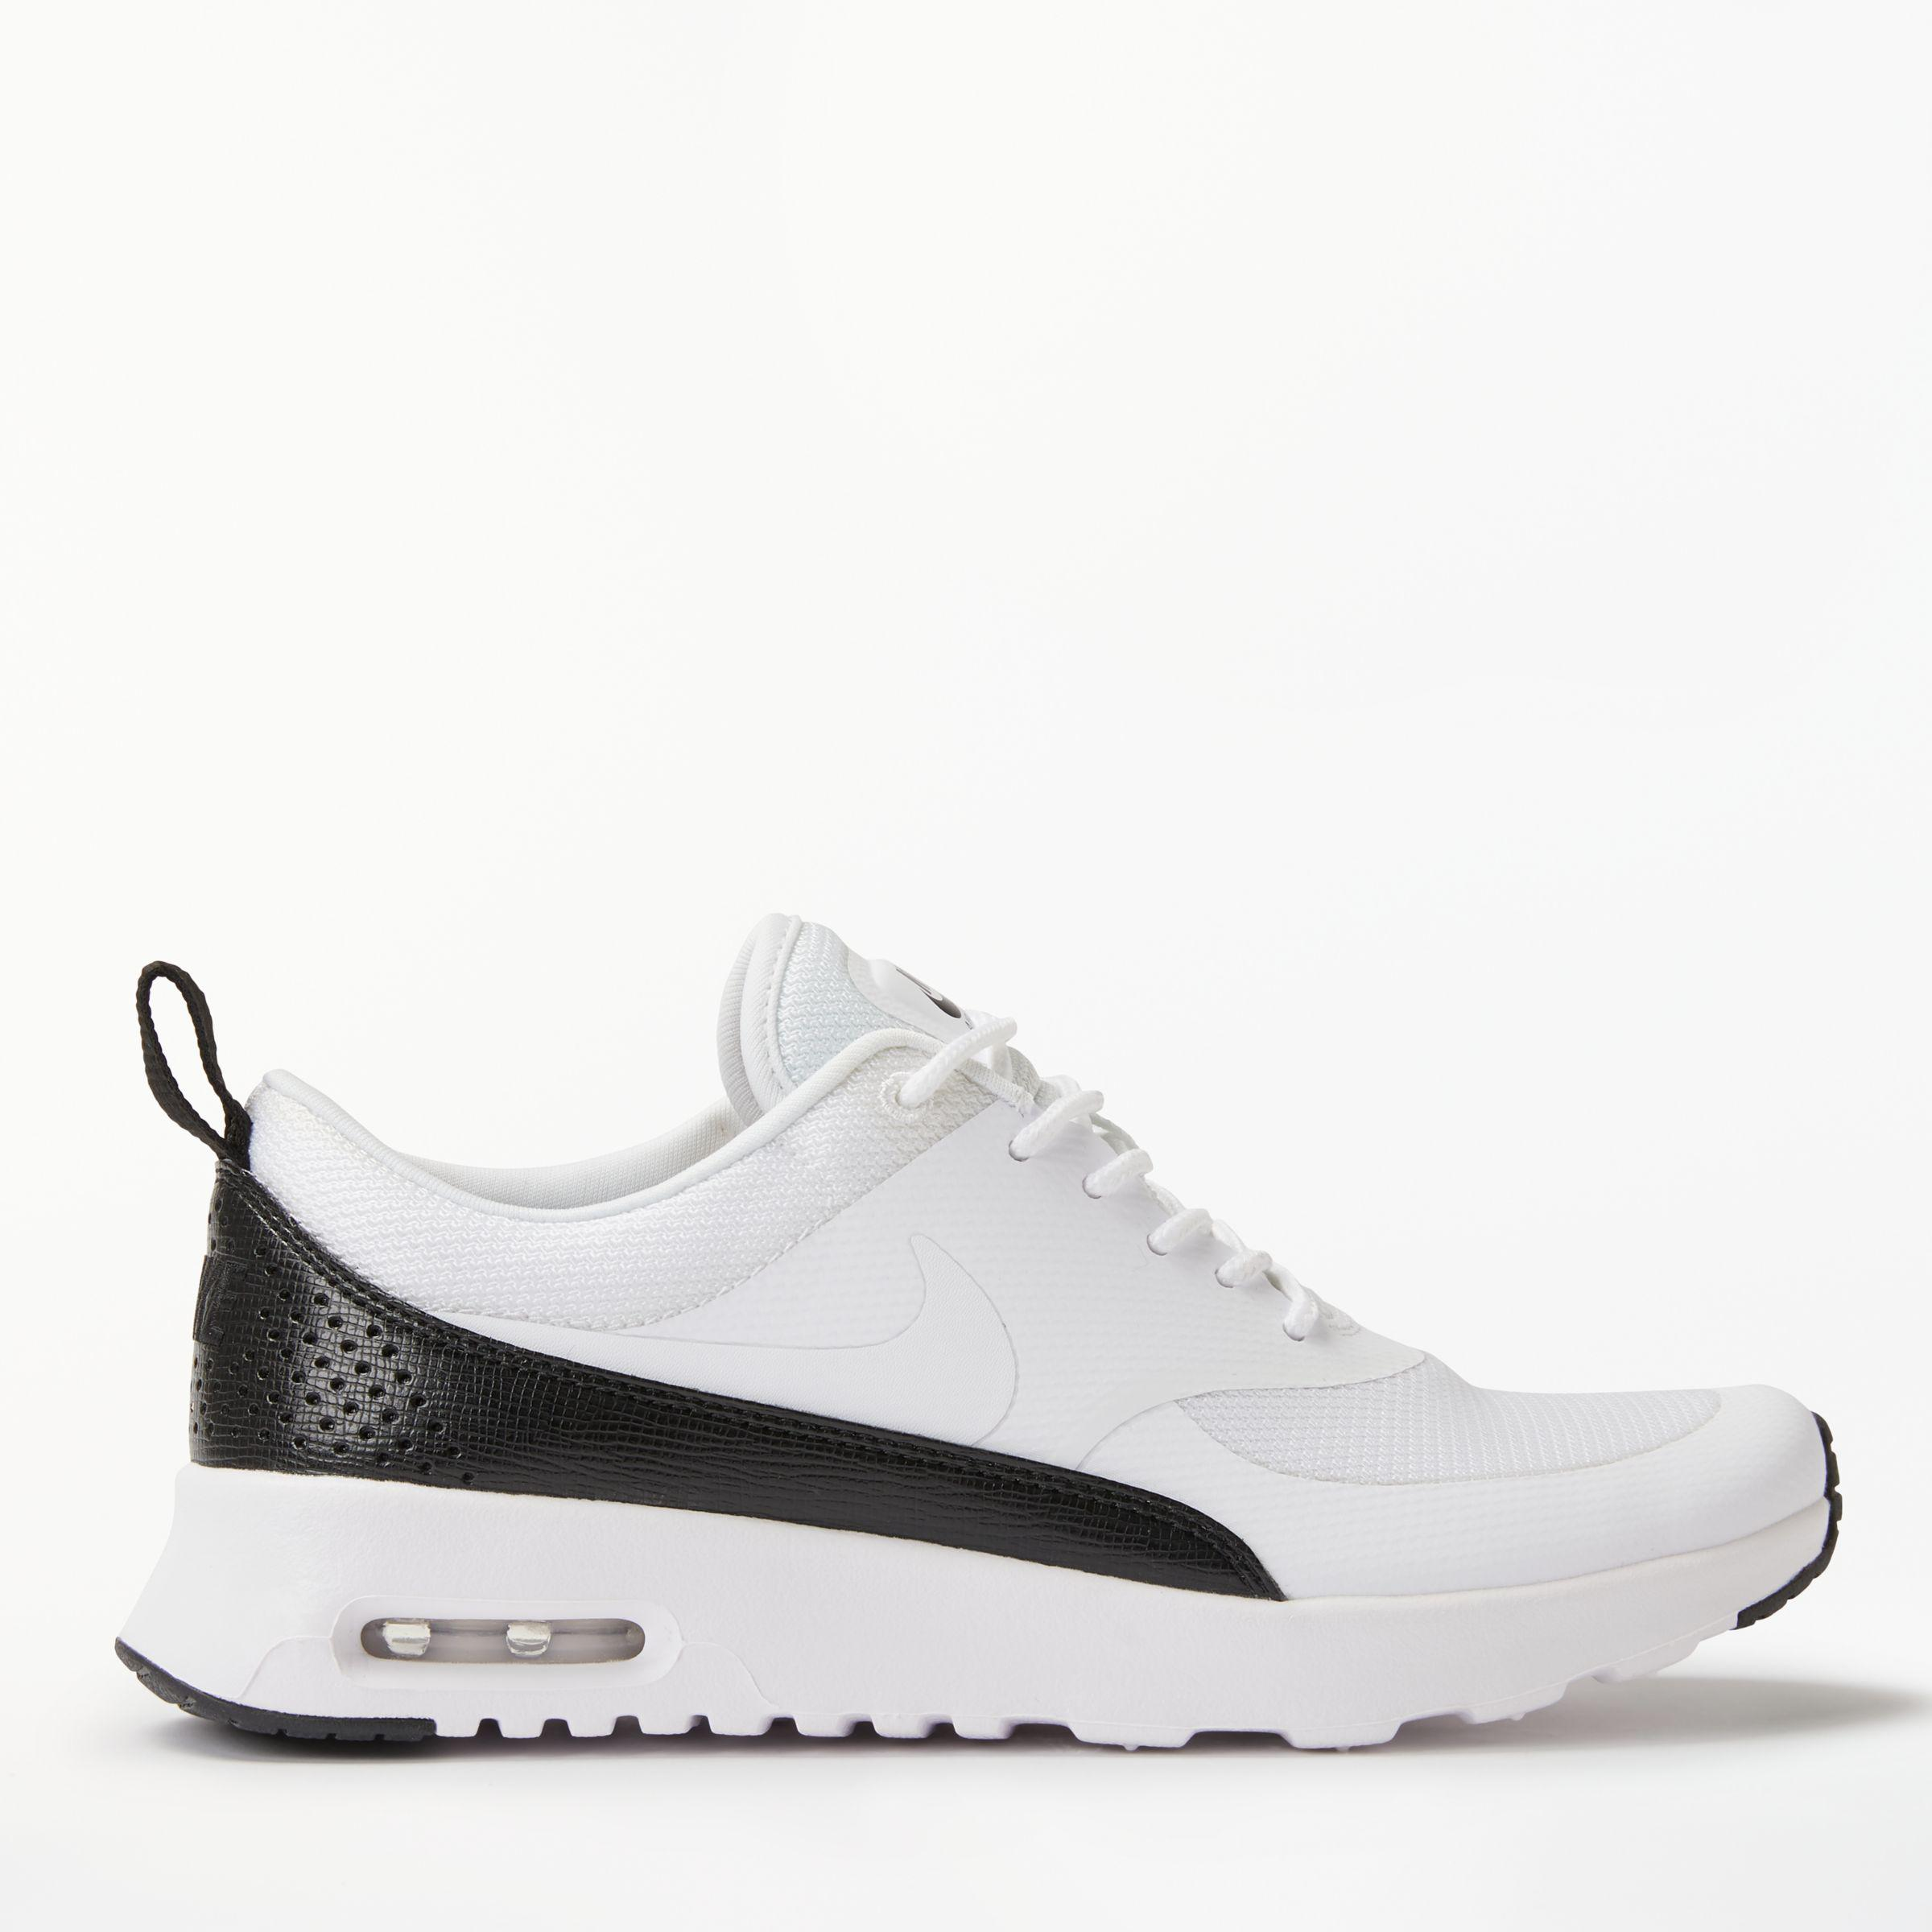 6d5304d8be7d Nike Air Max Thea Women s Trainers in White - Lyst